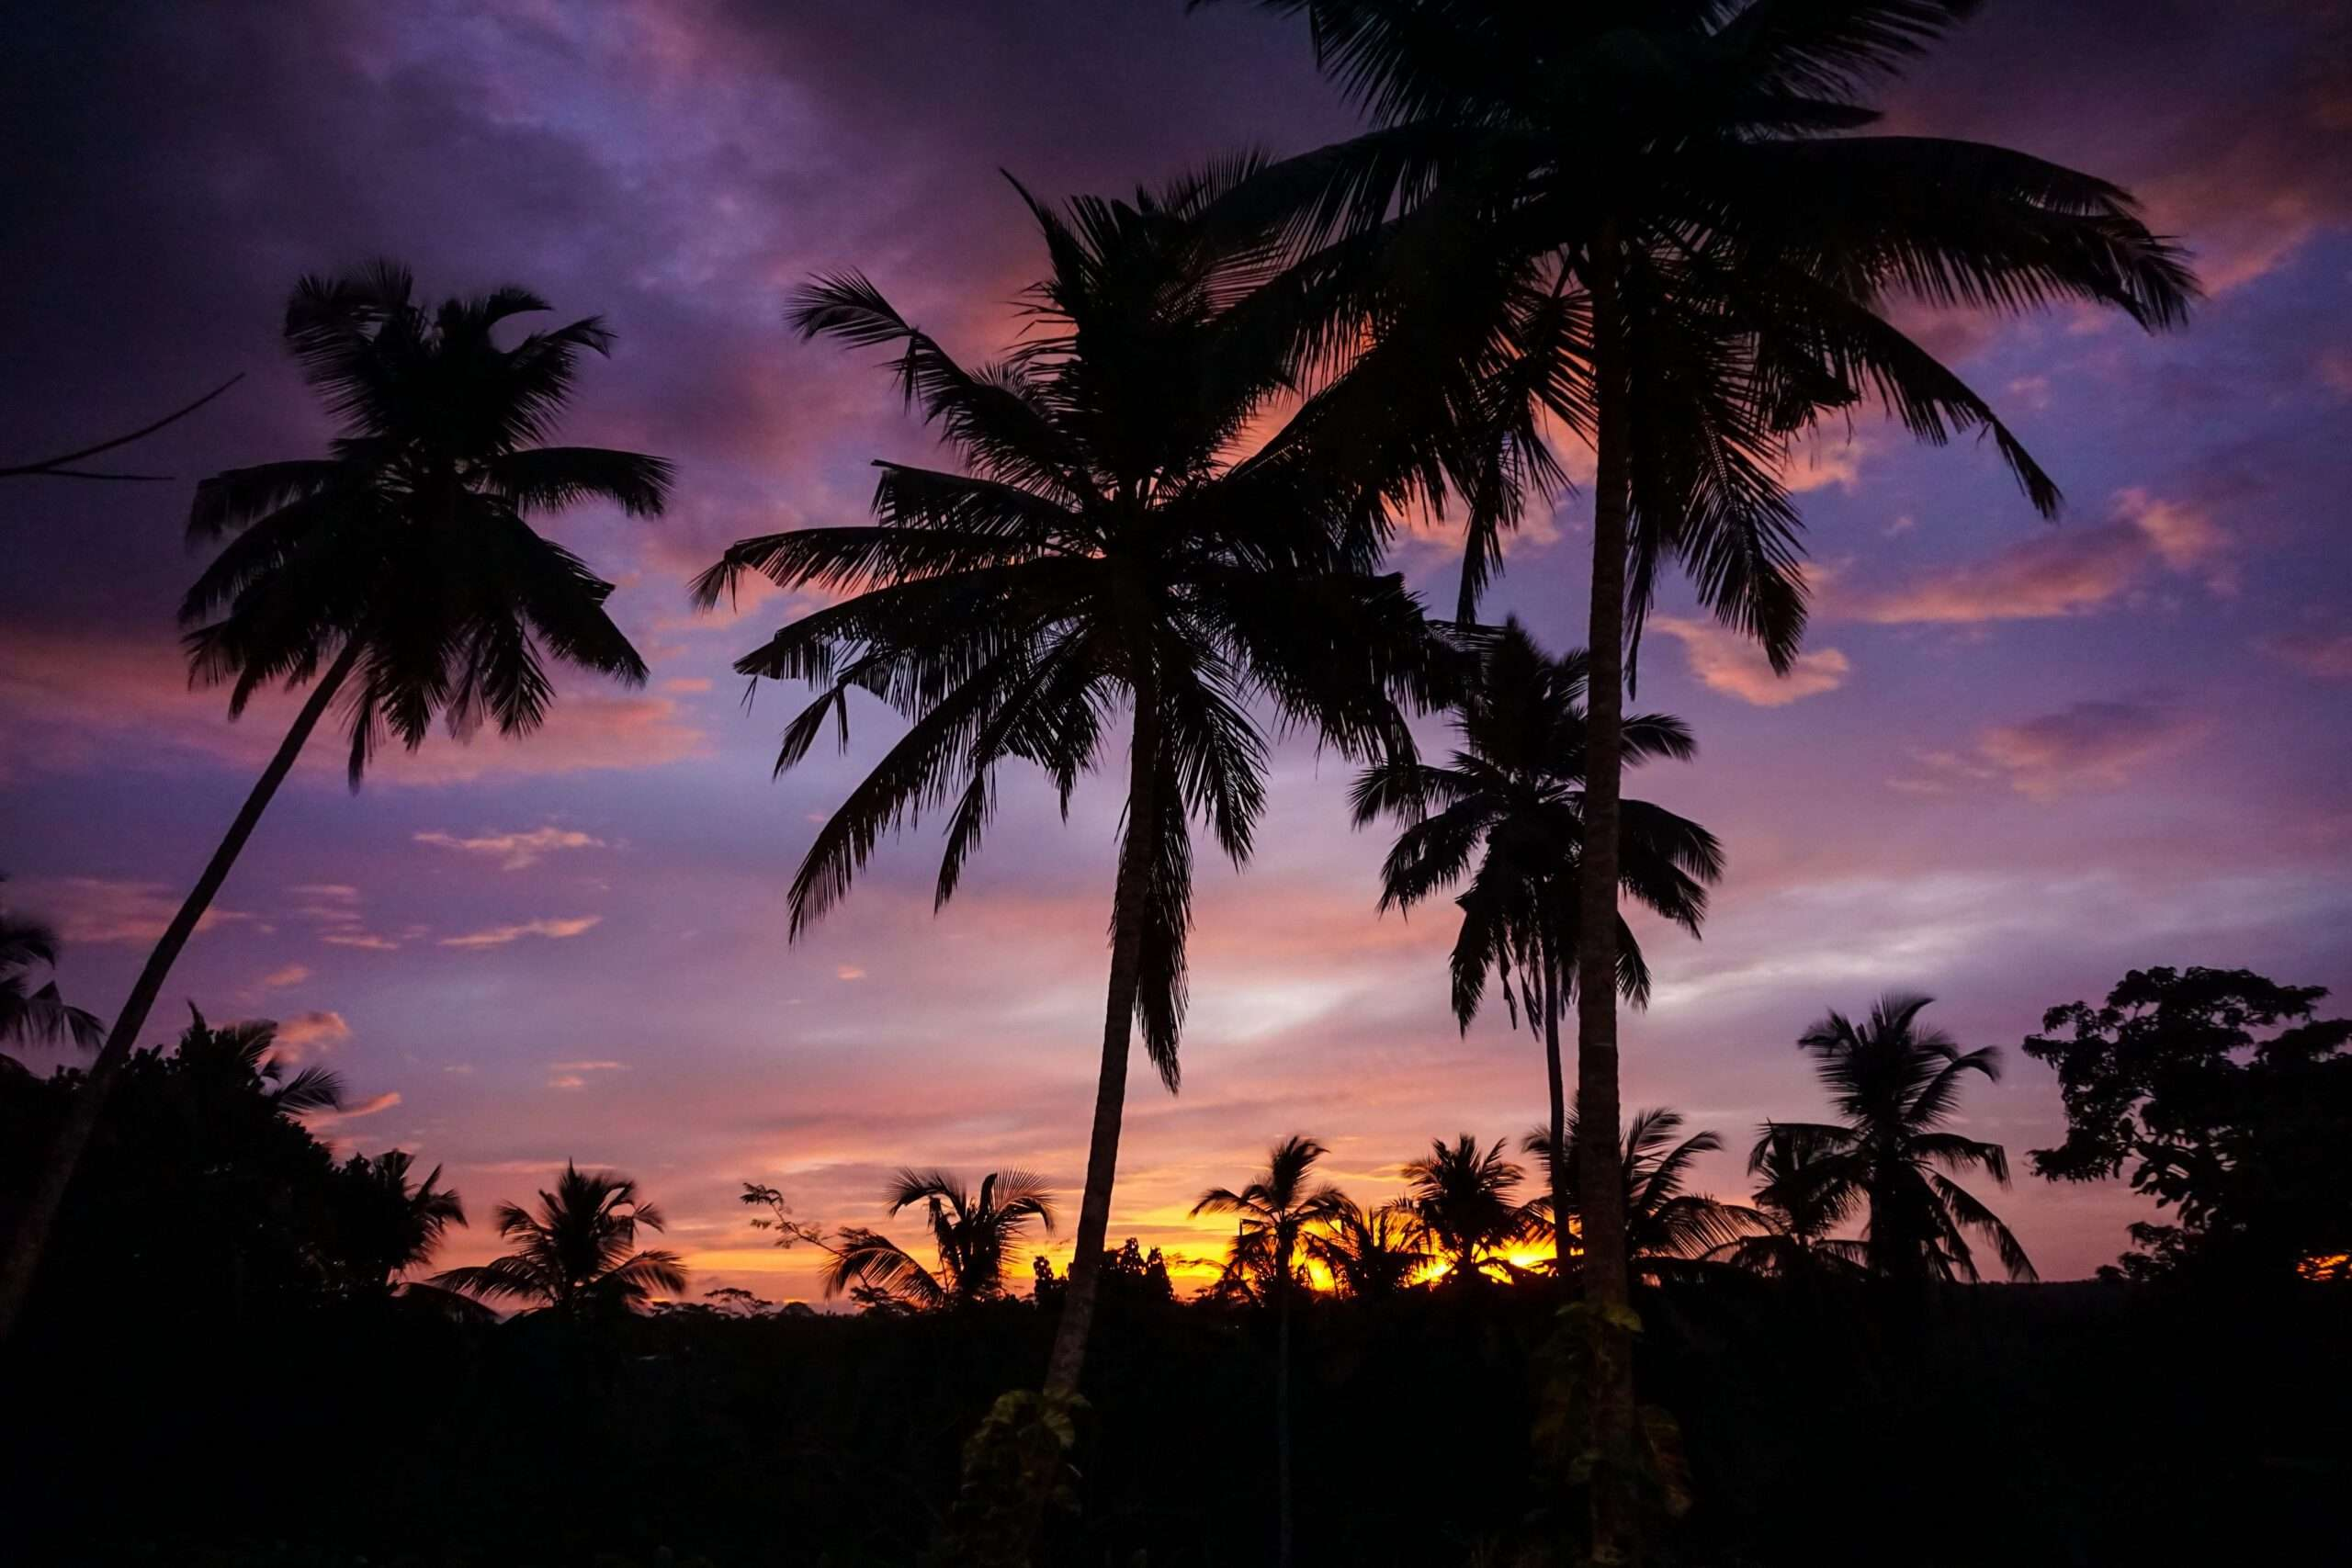 silhouette of palm trees against a sunset sky lit up purple and orange, at Villa Wambatu, one of the top villas in the world